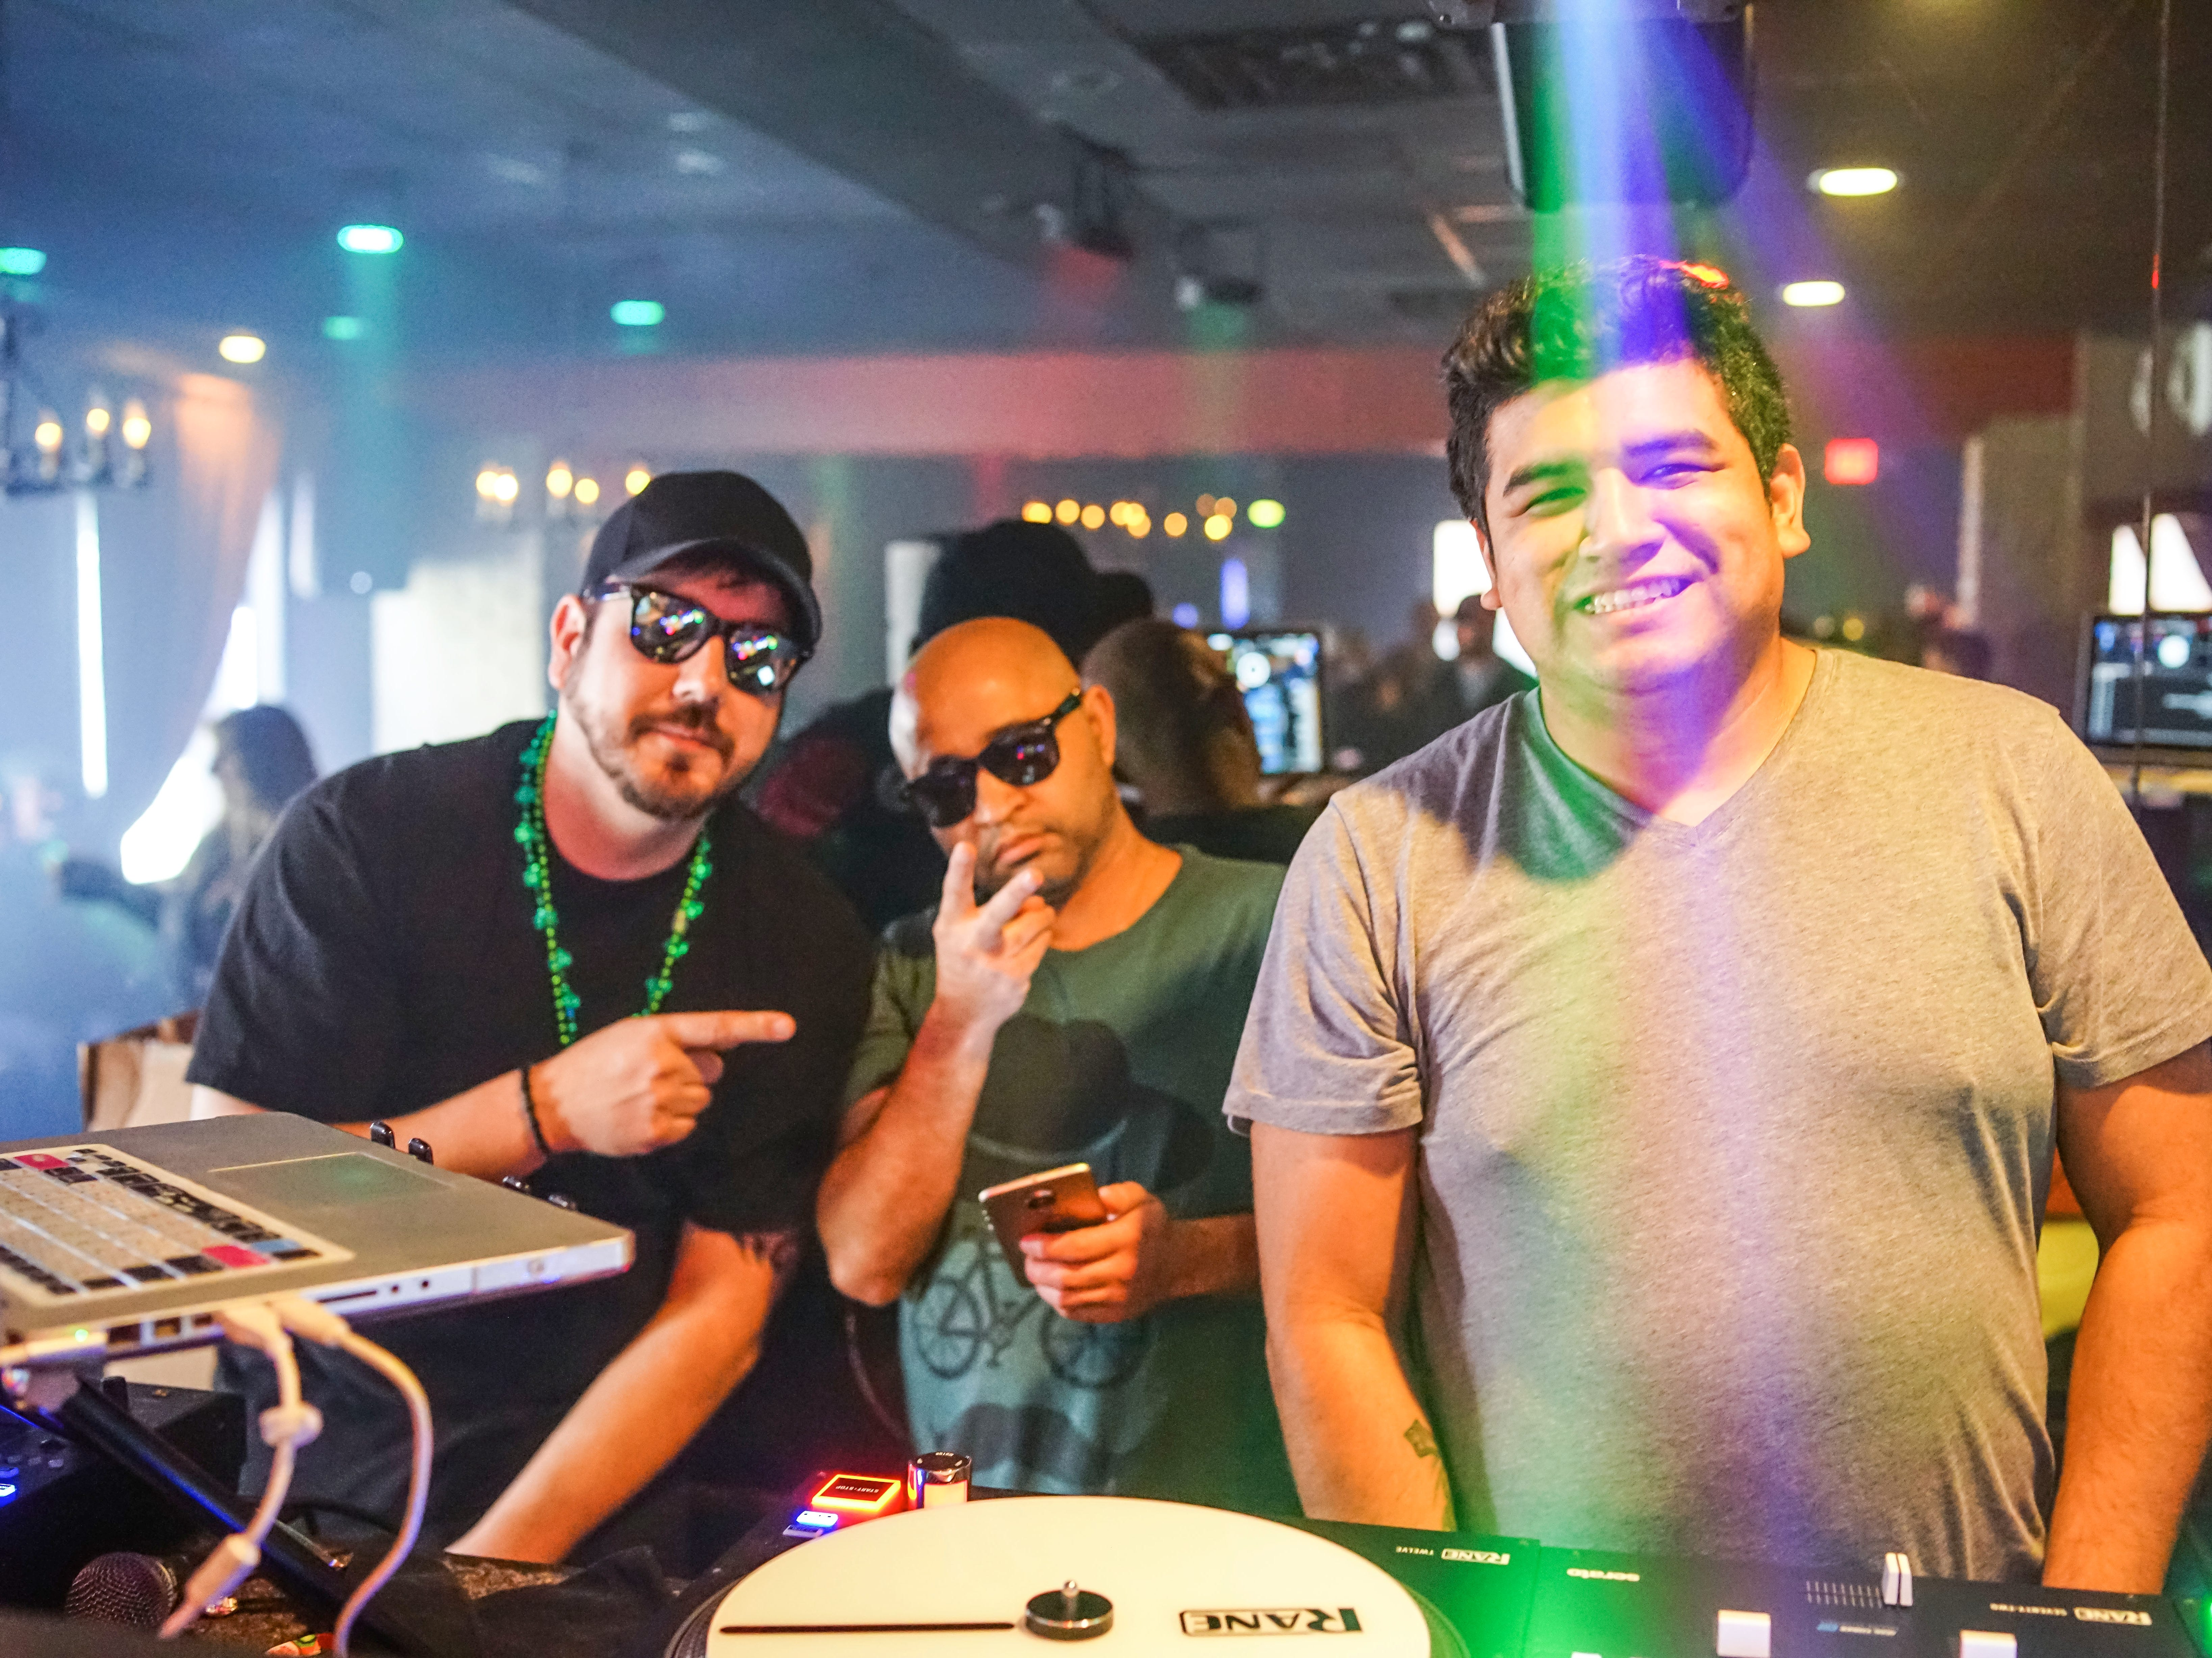 Chris Coffey, 30, Raj Devan, 30, and Edgar Ortiz, 30, all of Des Moines, getting the party started, Saturday, March 16, 2019, at Voodoo Lounge.